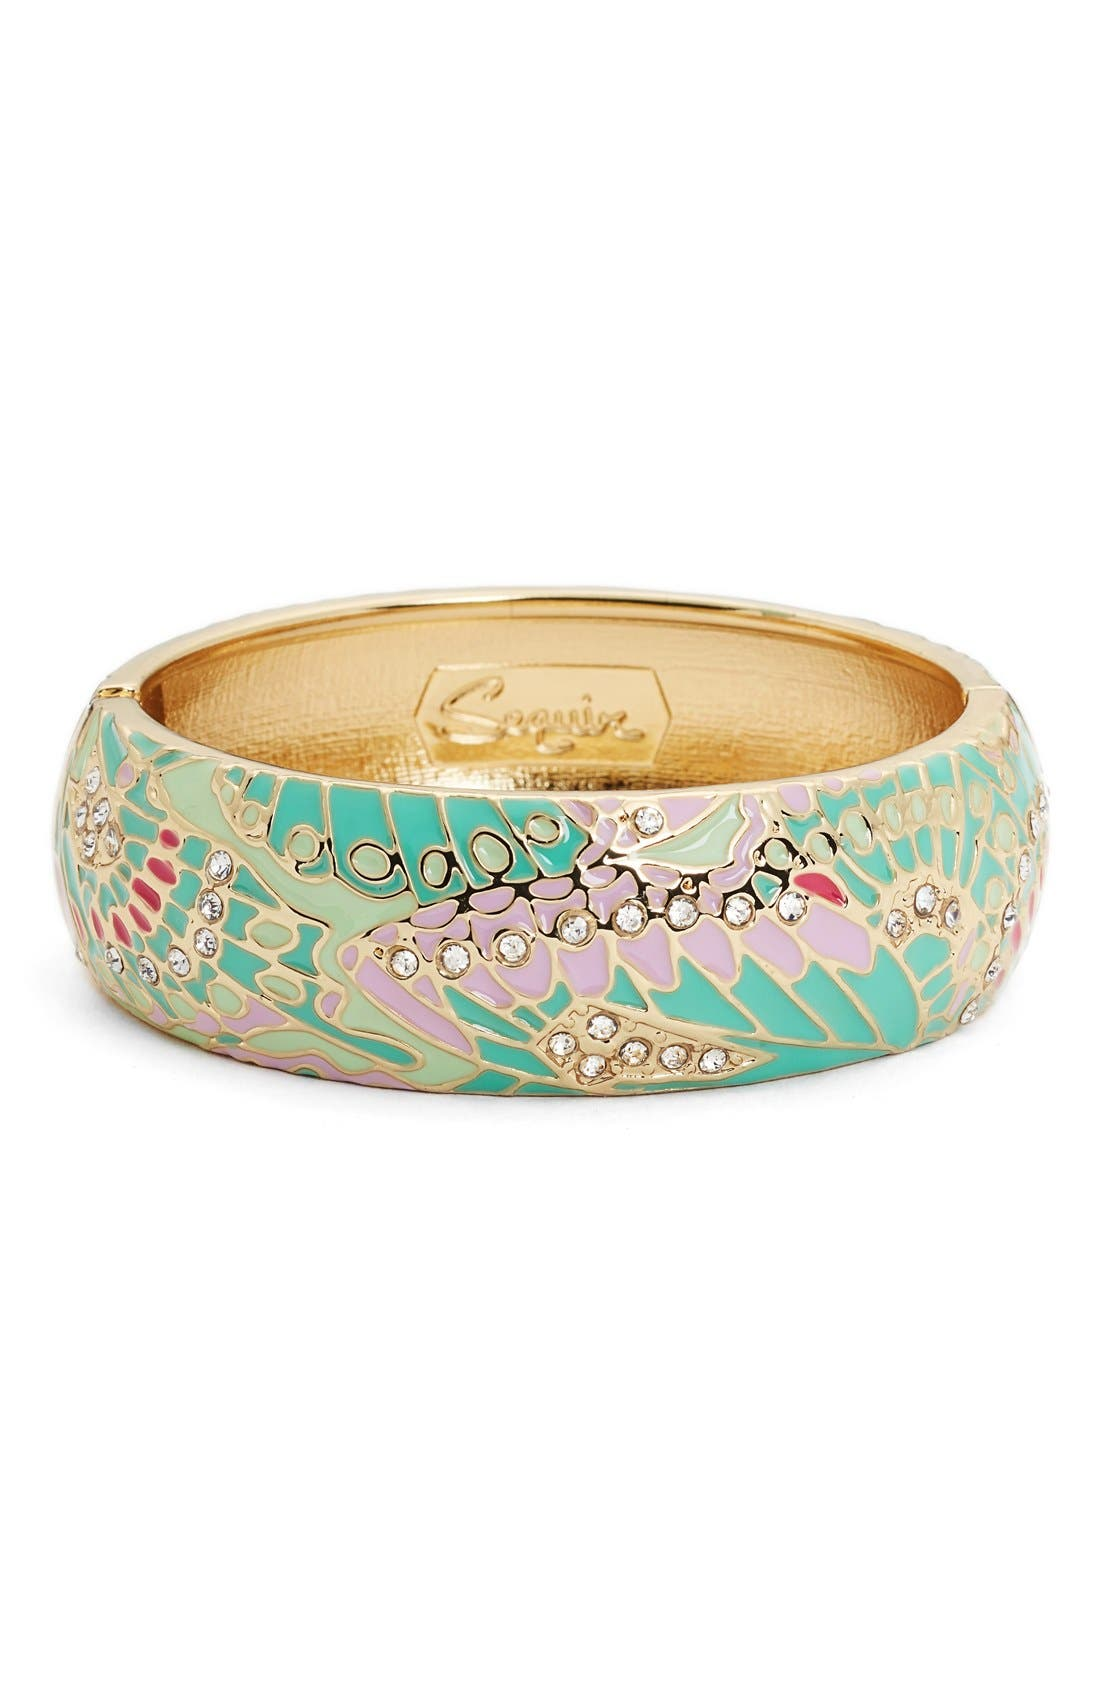 Sequin Mariposa Wide Bangle